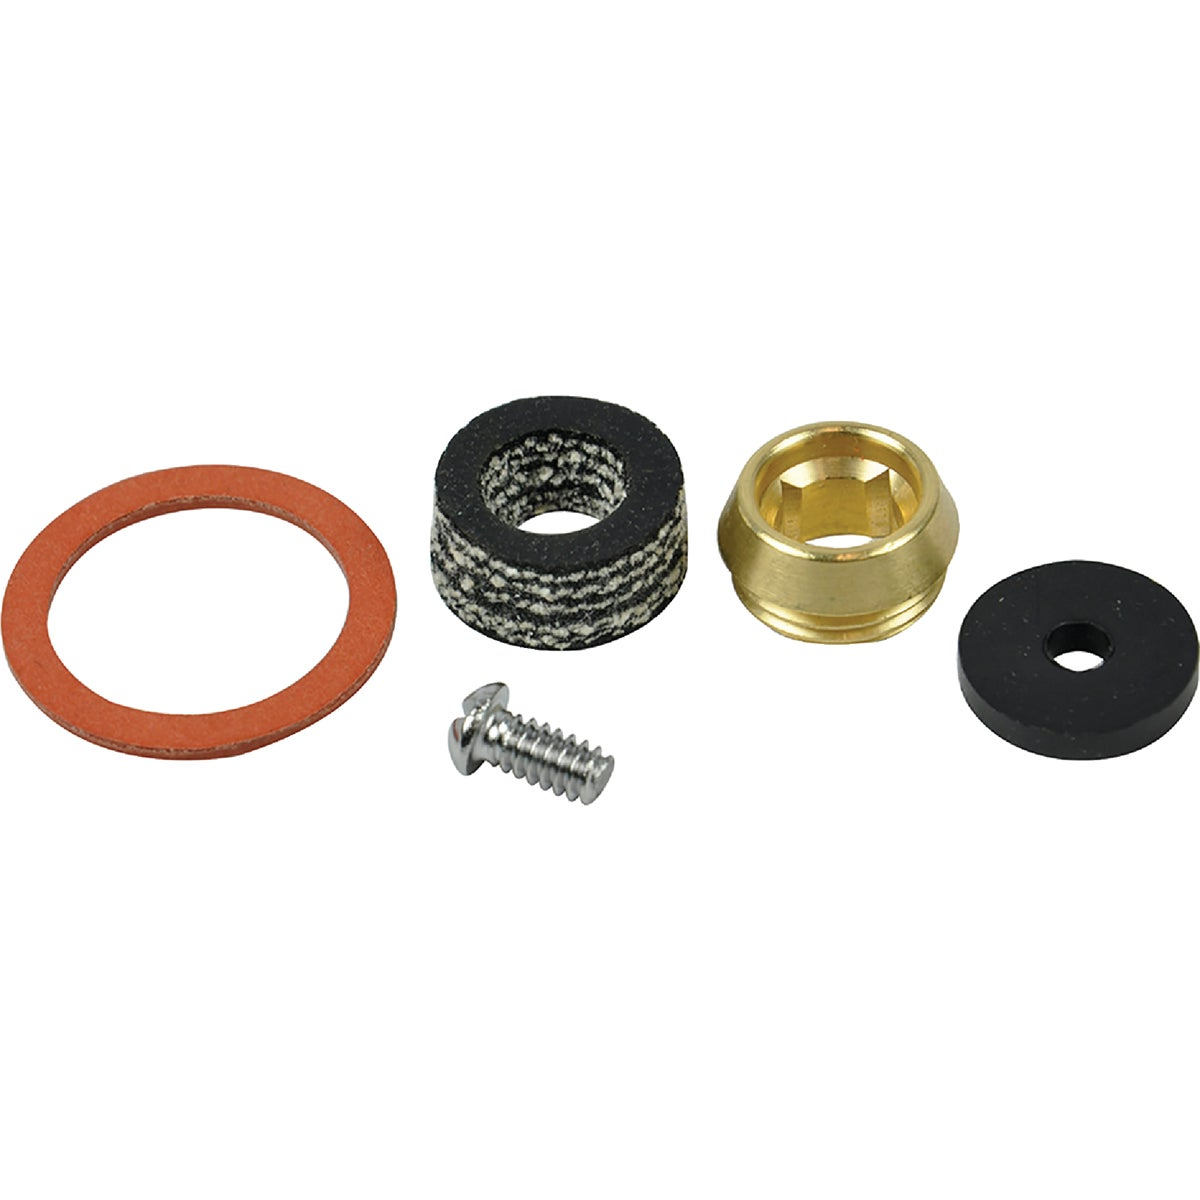 STEM REPAIR KIT - 24162 by Danco Perfect Match